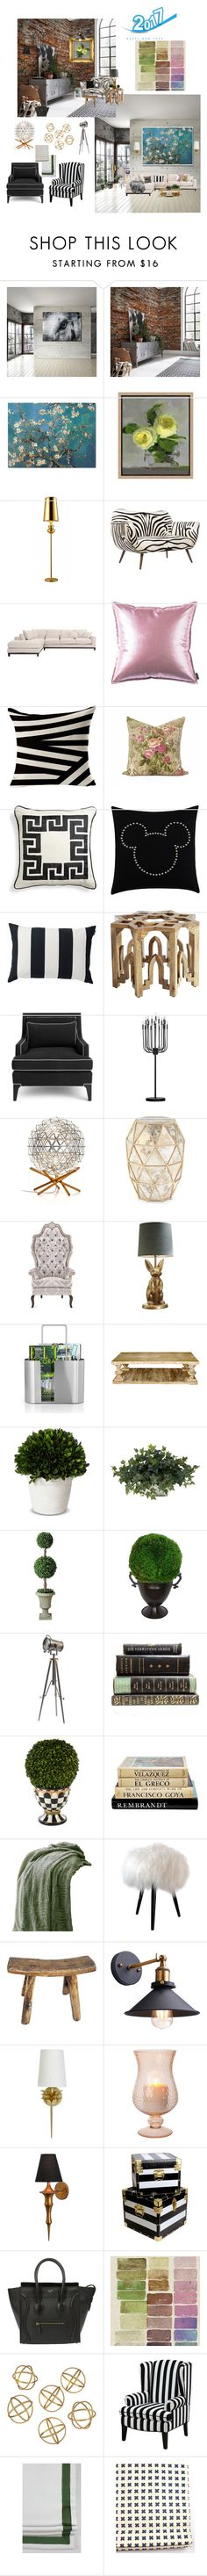 """""""New Group ... No place like Home  ( New Year New Decor ) contest"""" by deborah-518 ❤ liked on Polyvore featuring interior, interiors, interior design, home, home decor, interior decorating, Ready2hangart, Komar, Pottery Barn and Emporium Home"""